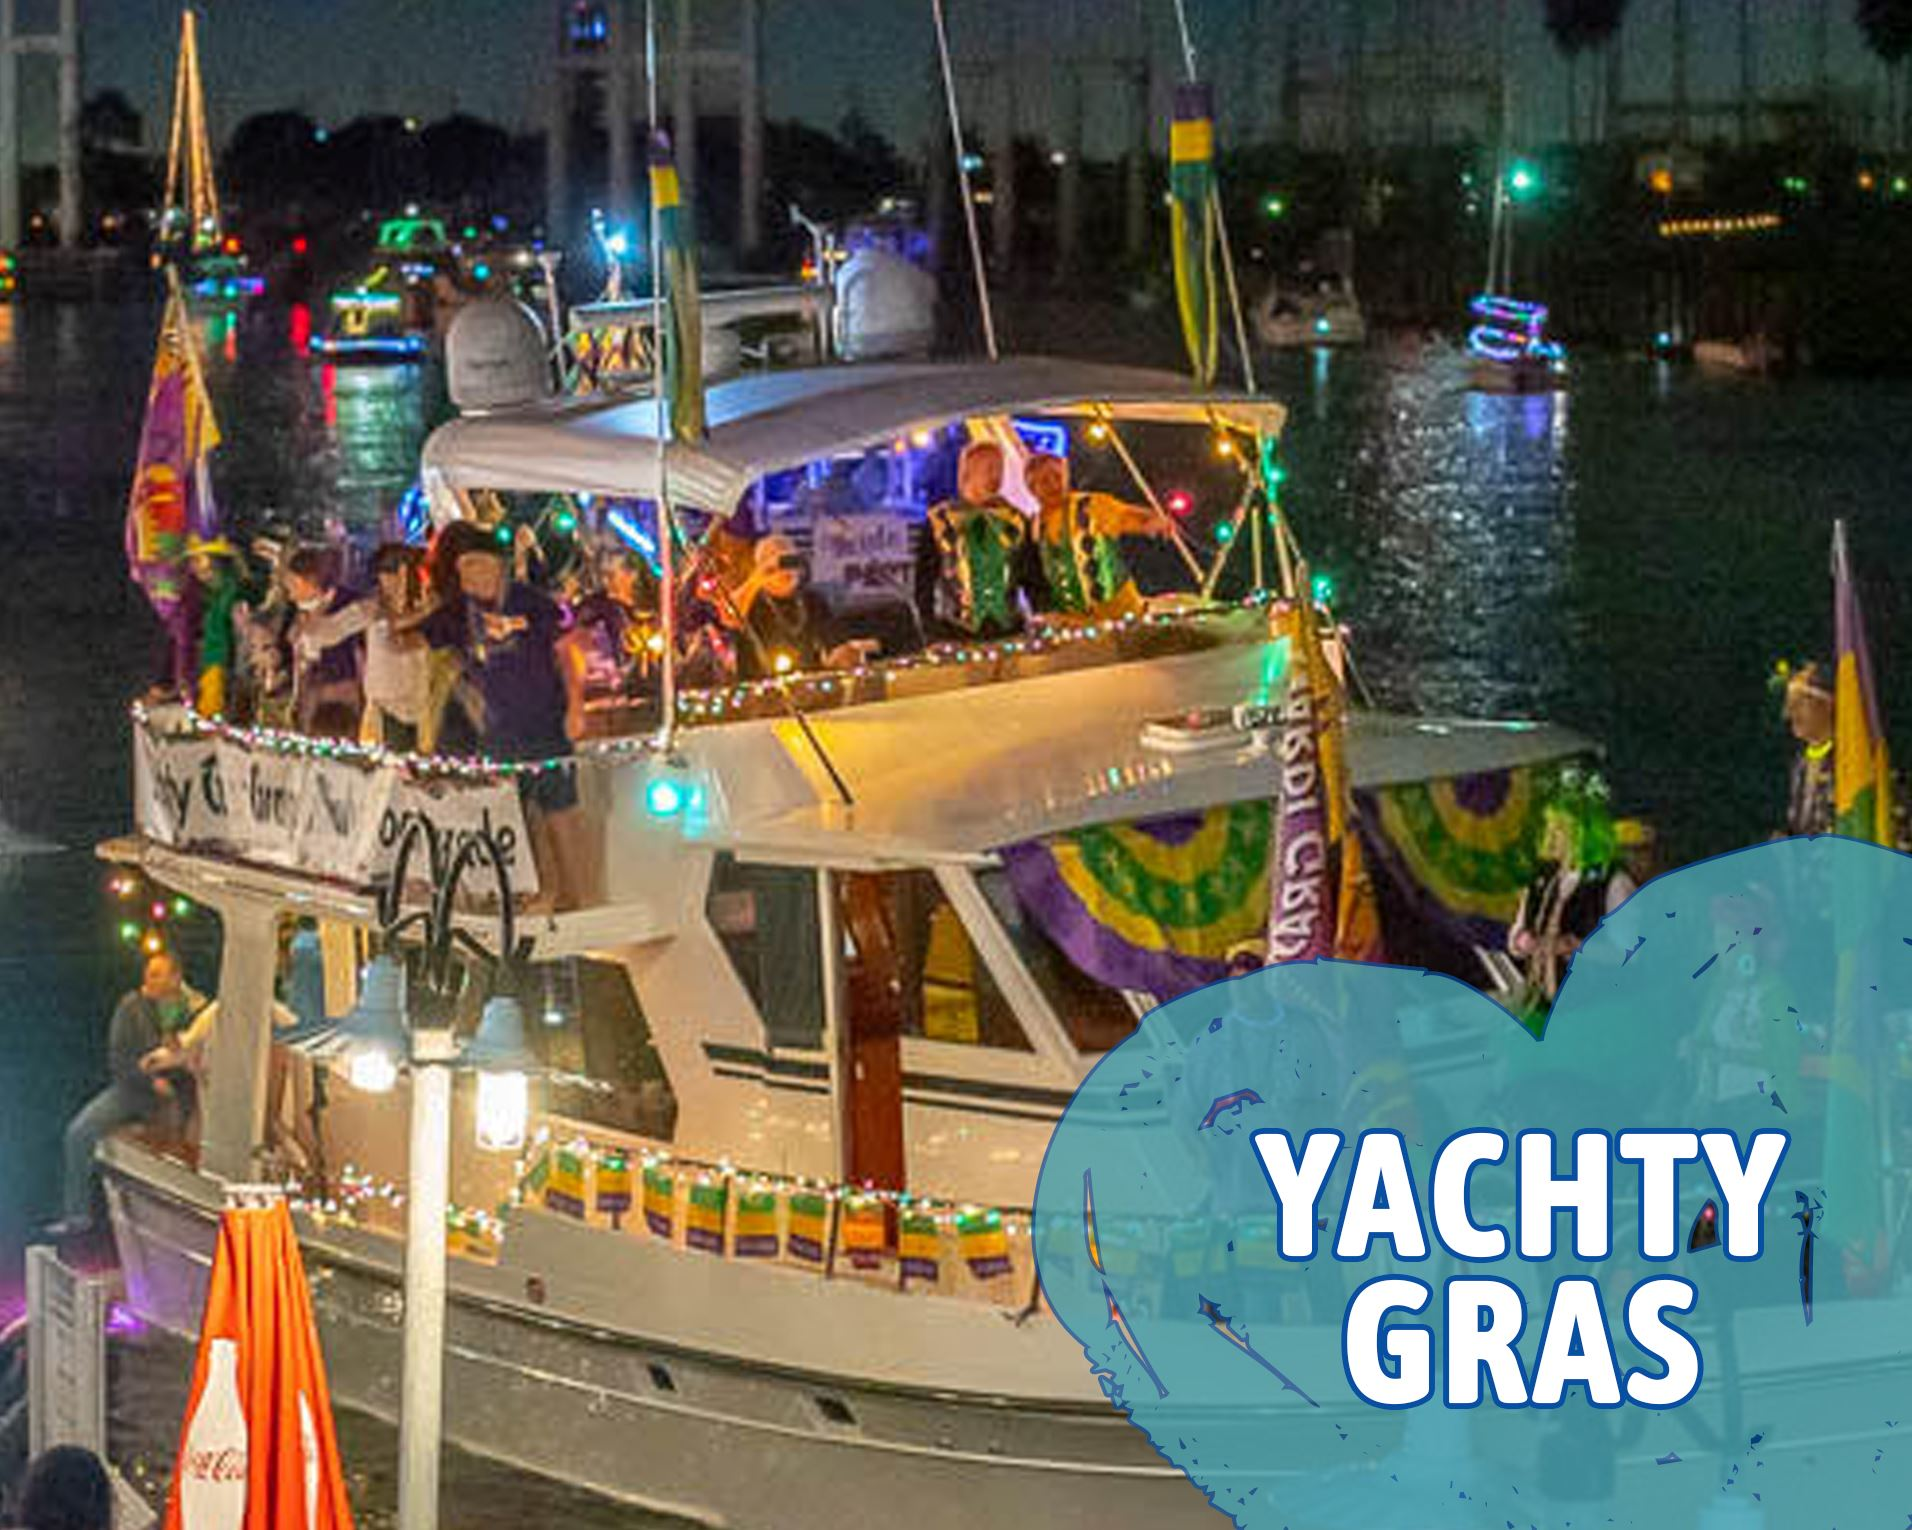 Yachty Gras Opens in new window